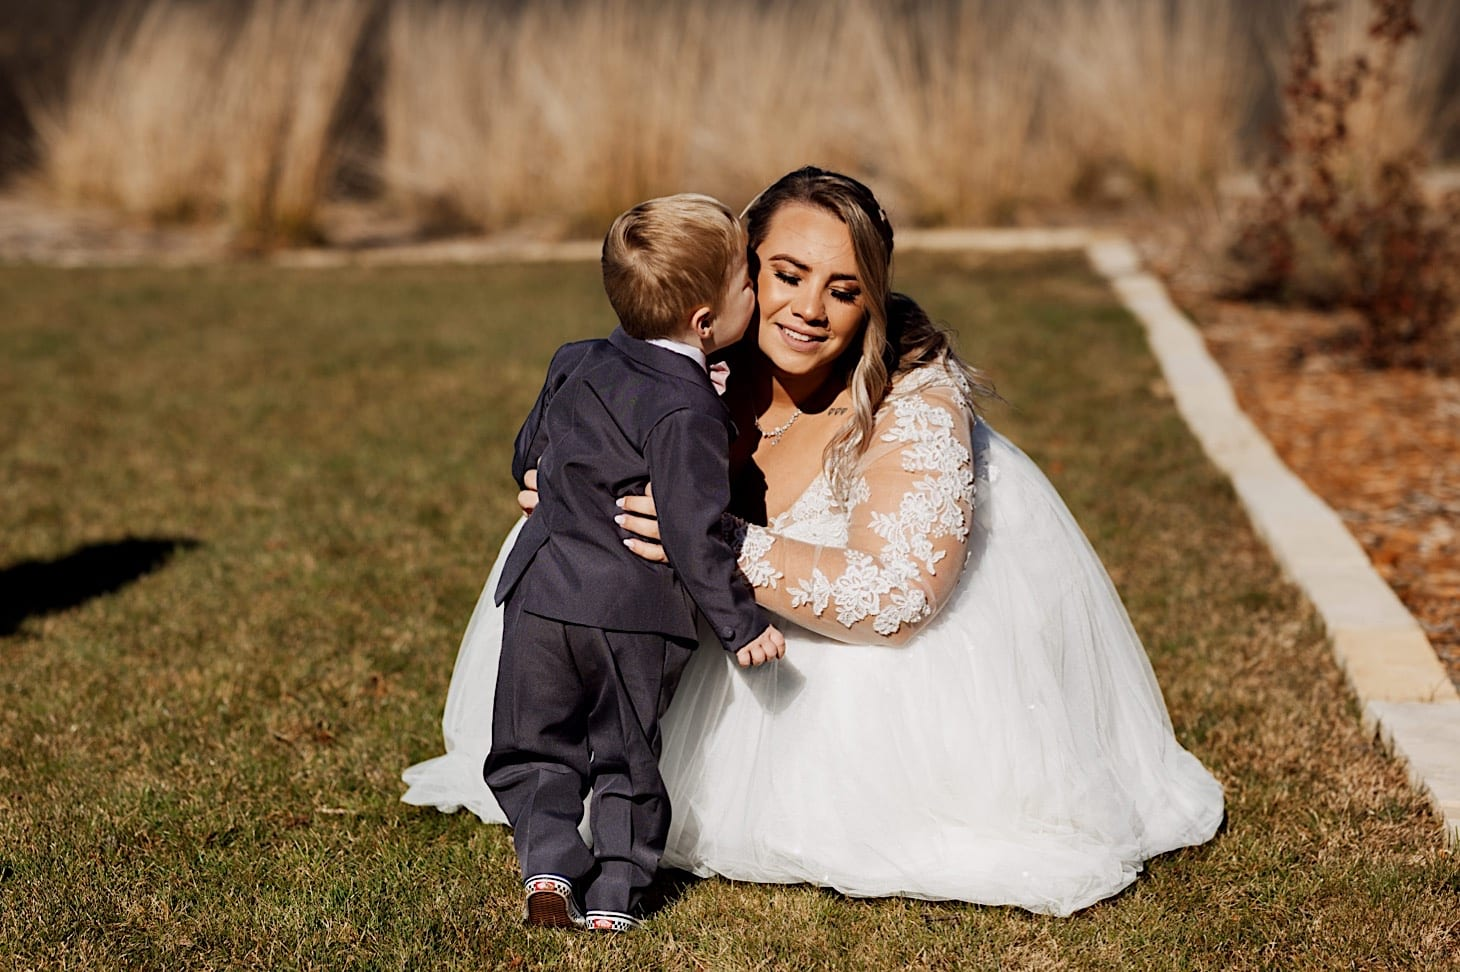 ring bearer with bride Des Moines Iowa